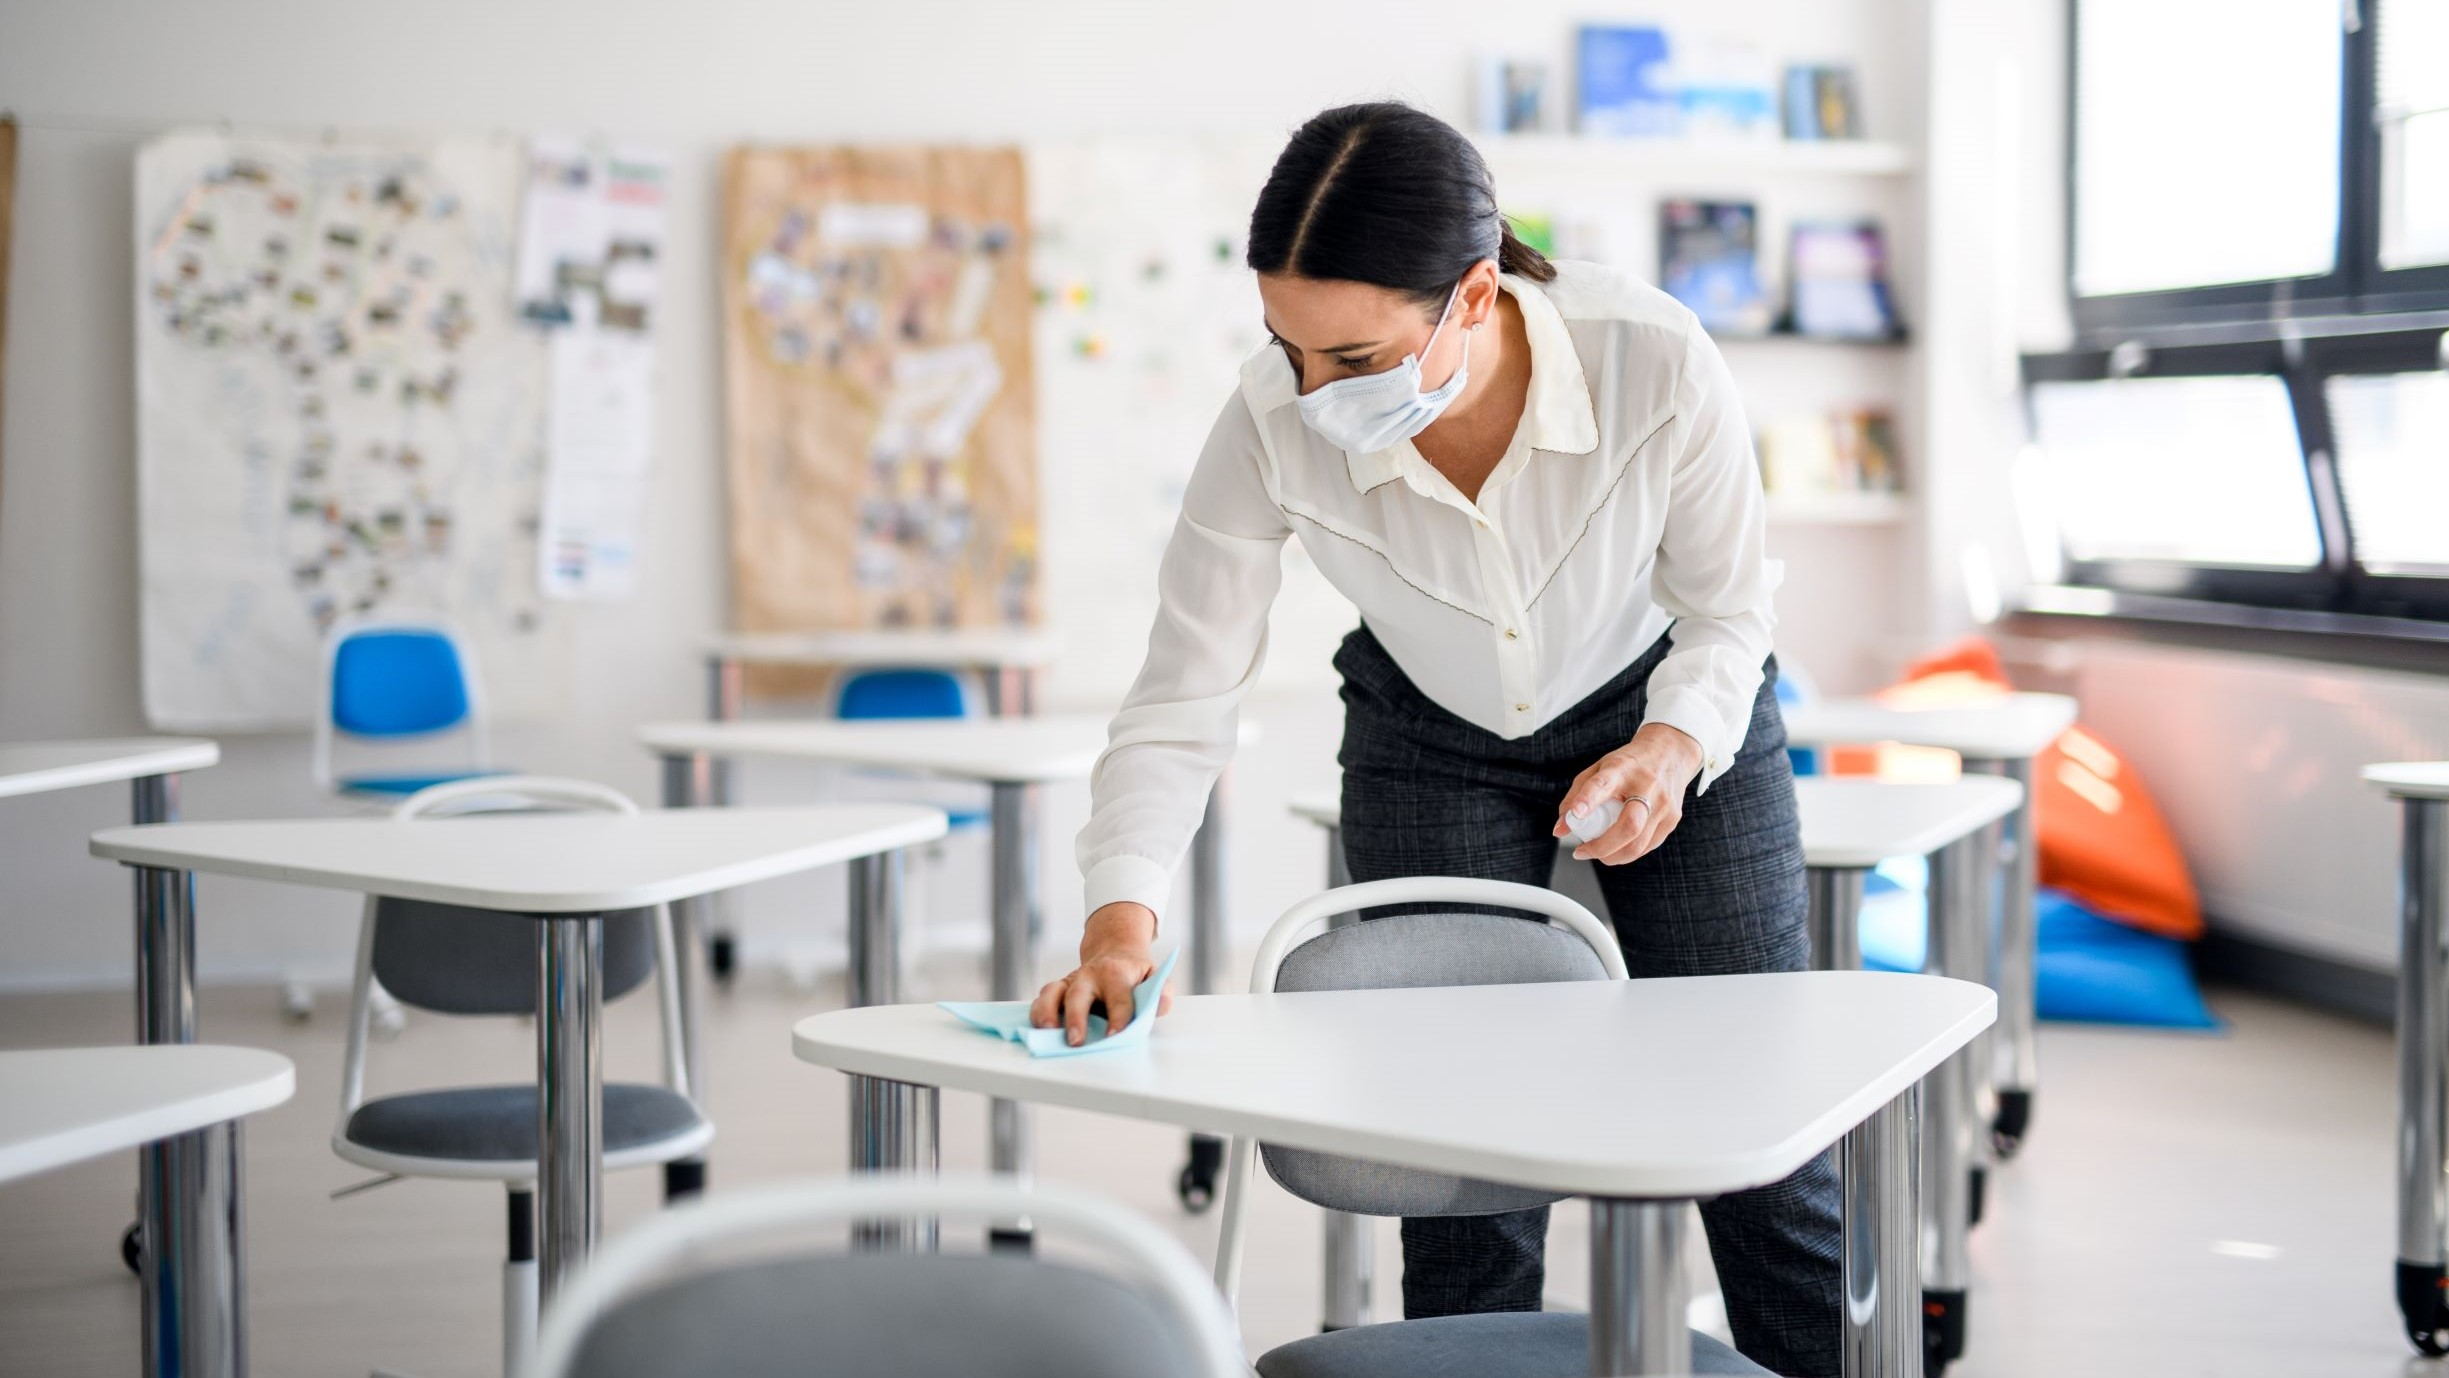 School Disinfection: How to Stop the Spread of COVID-19